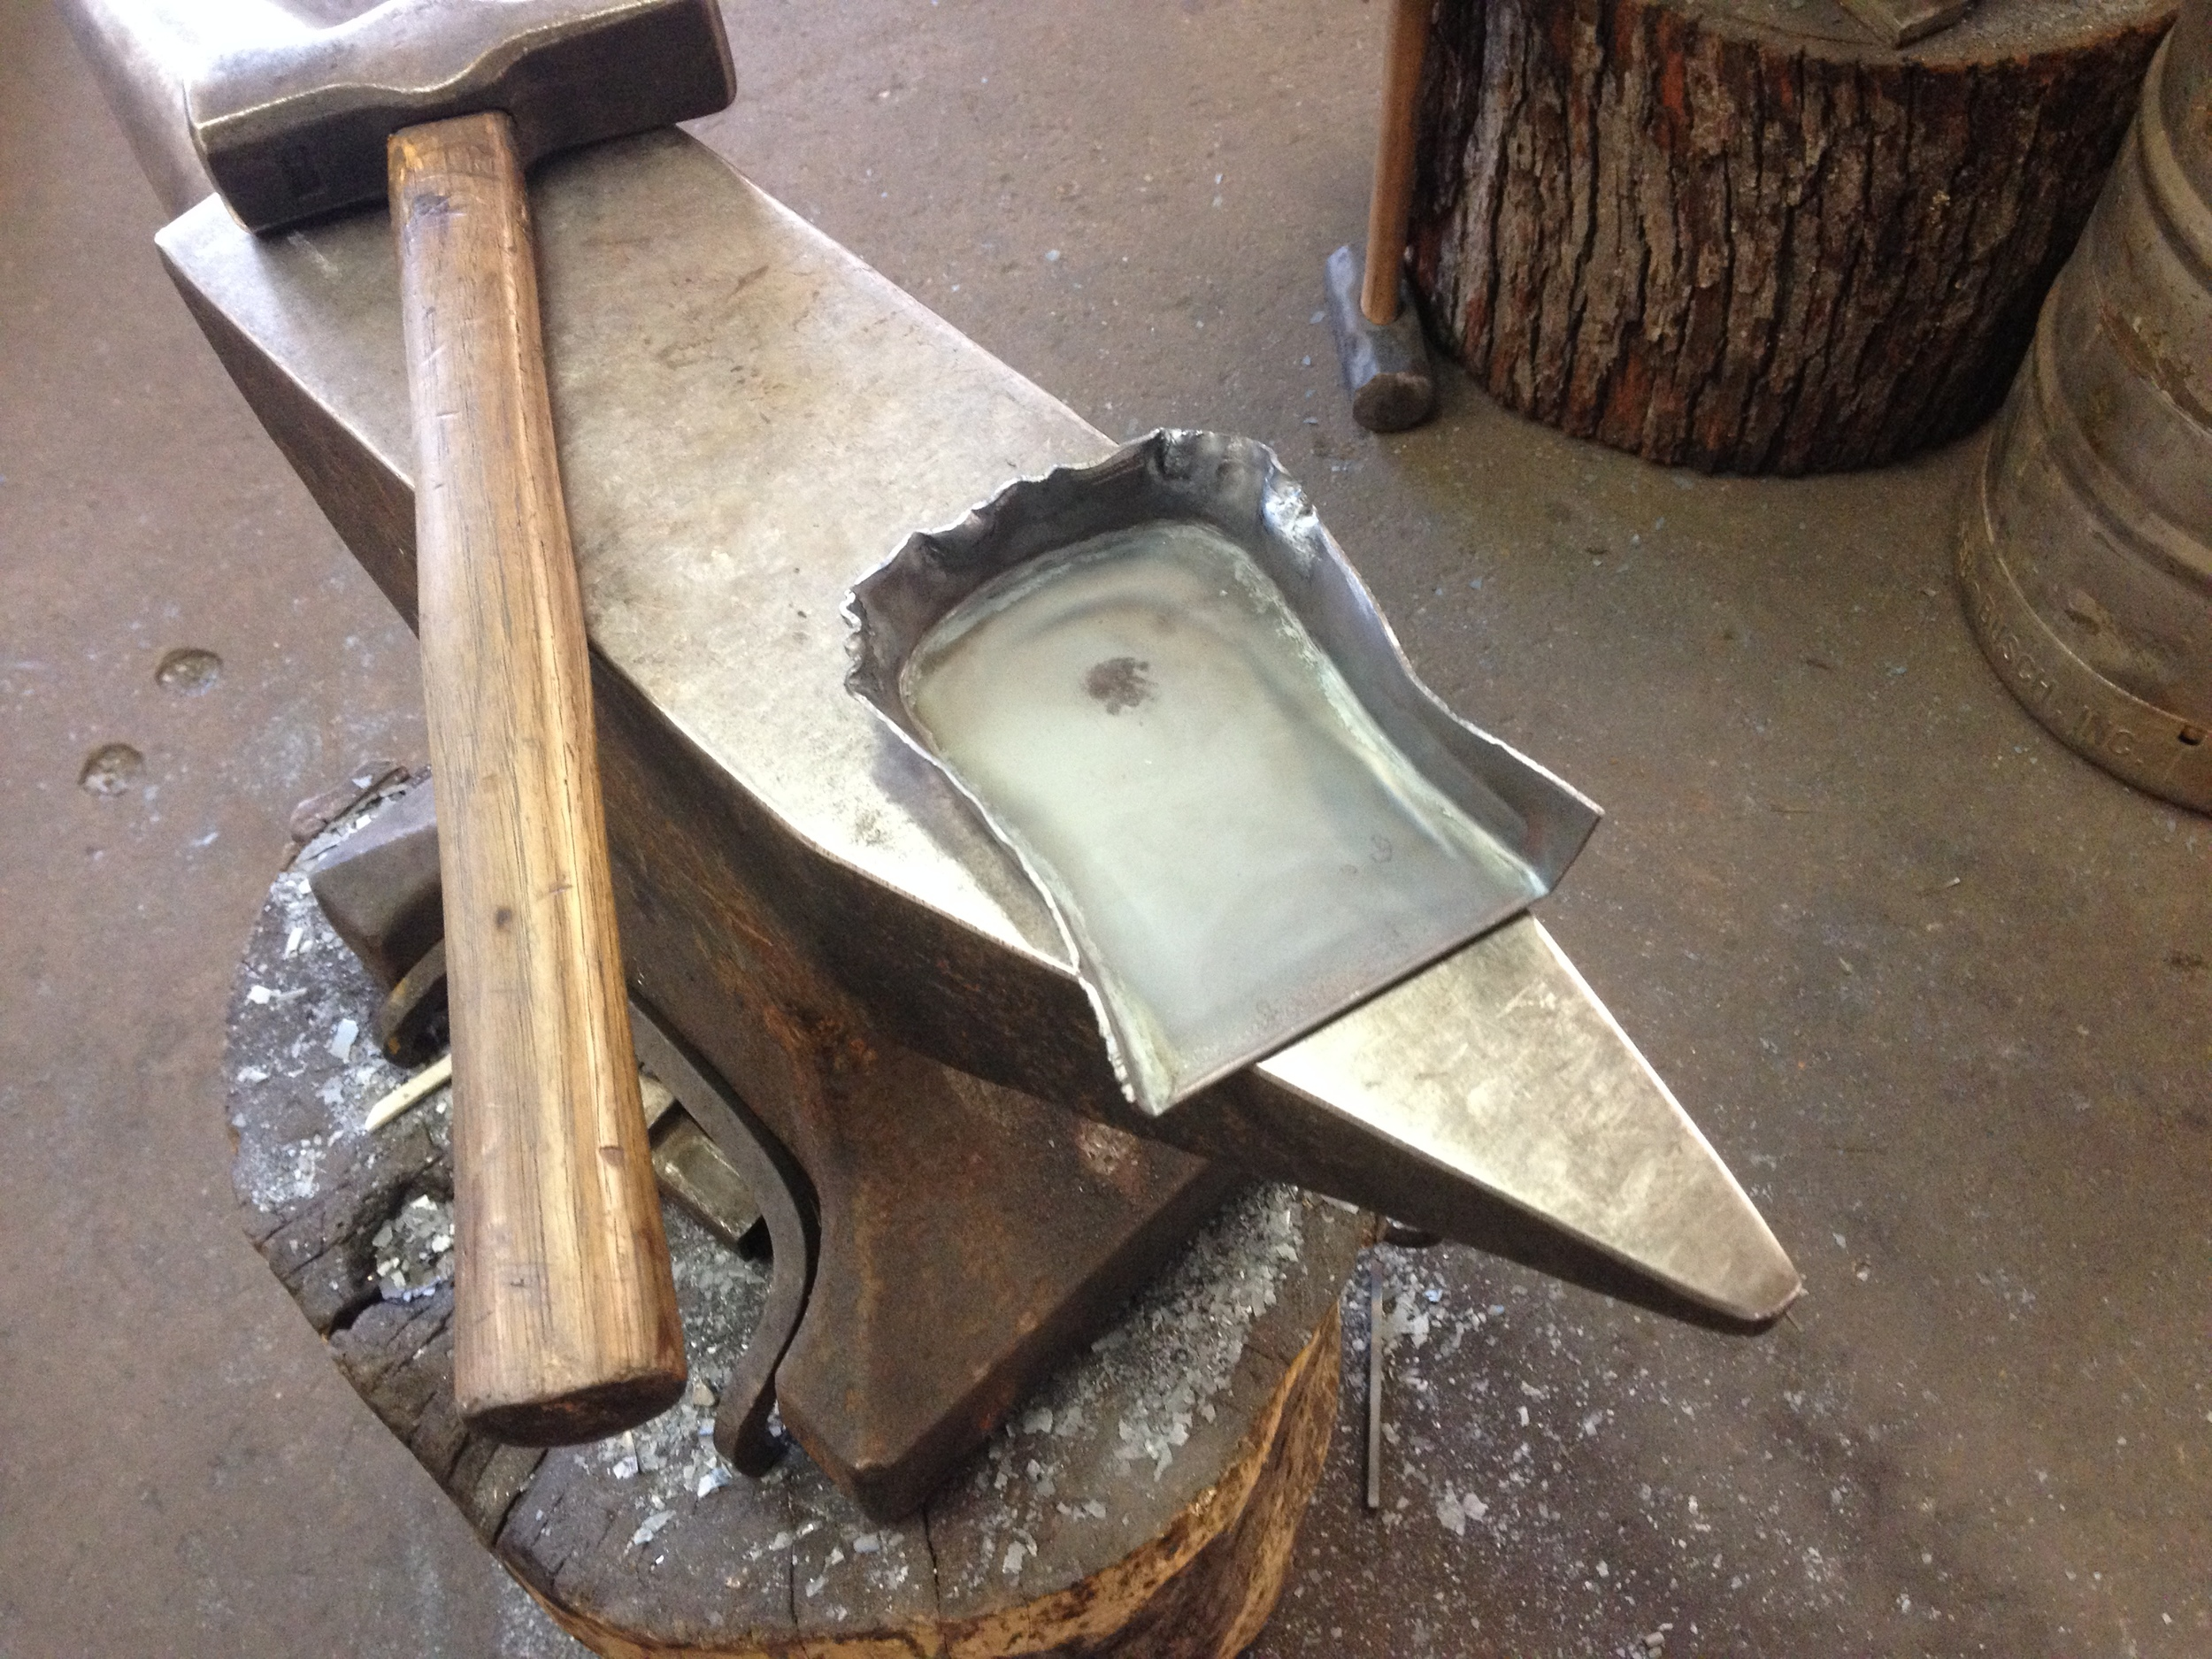 Fireplace shovel in process on the anvil